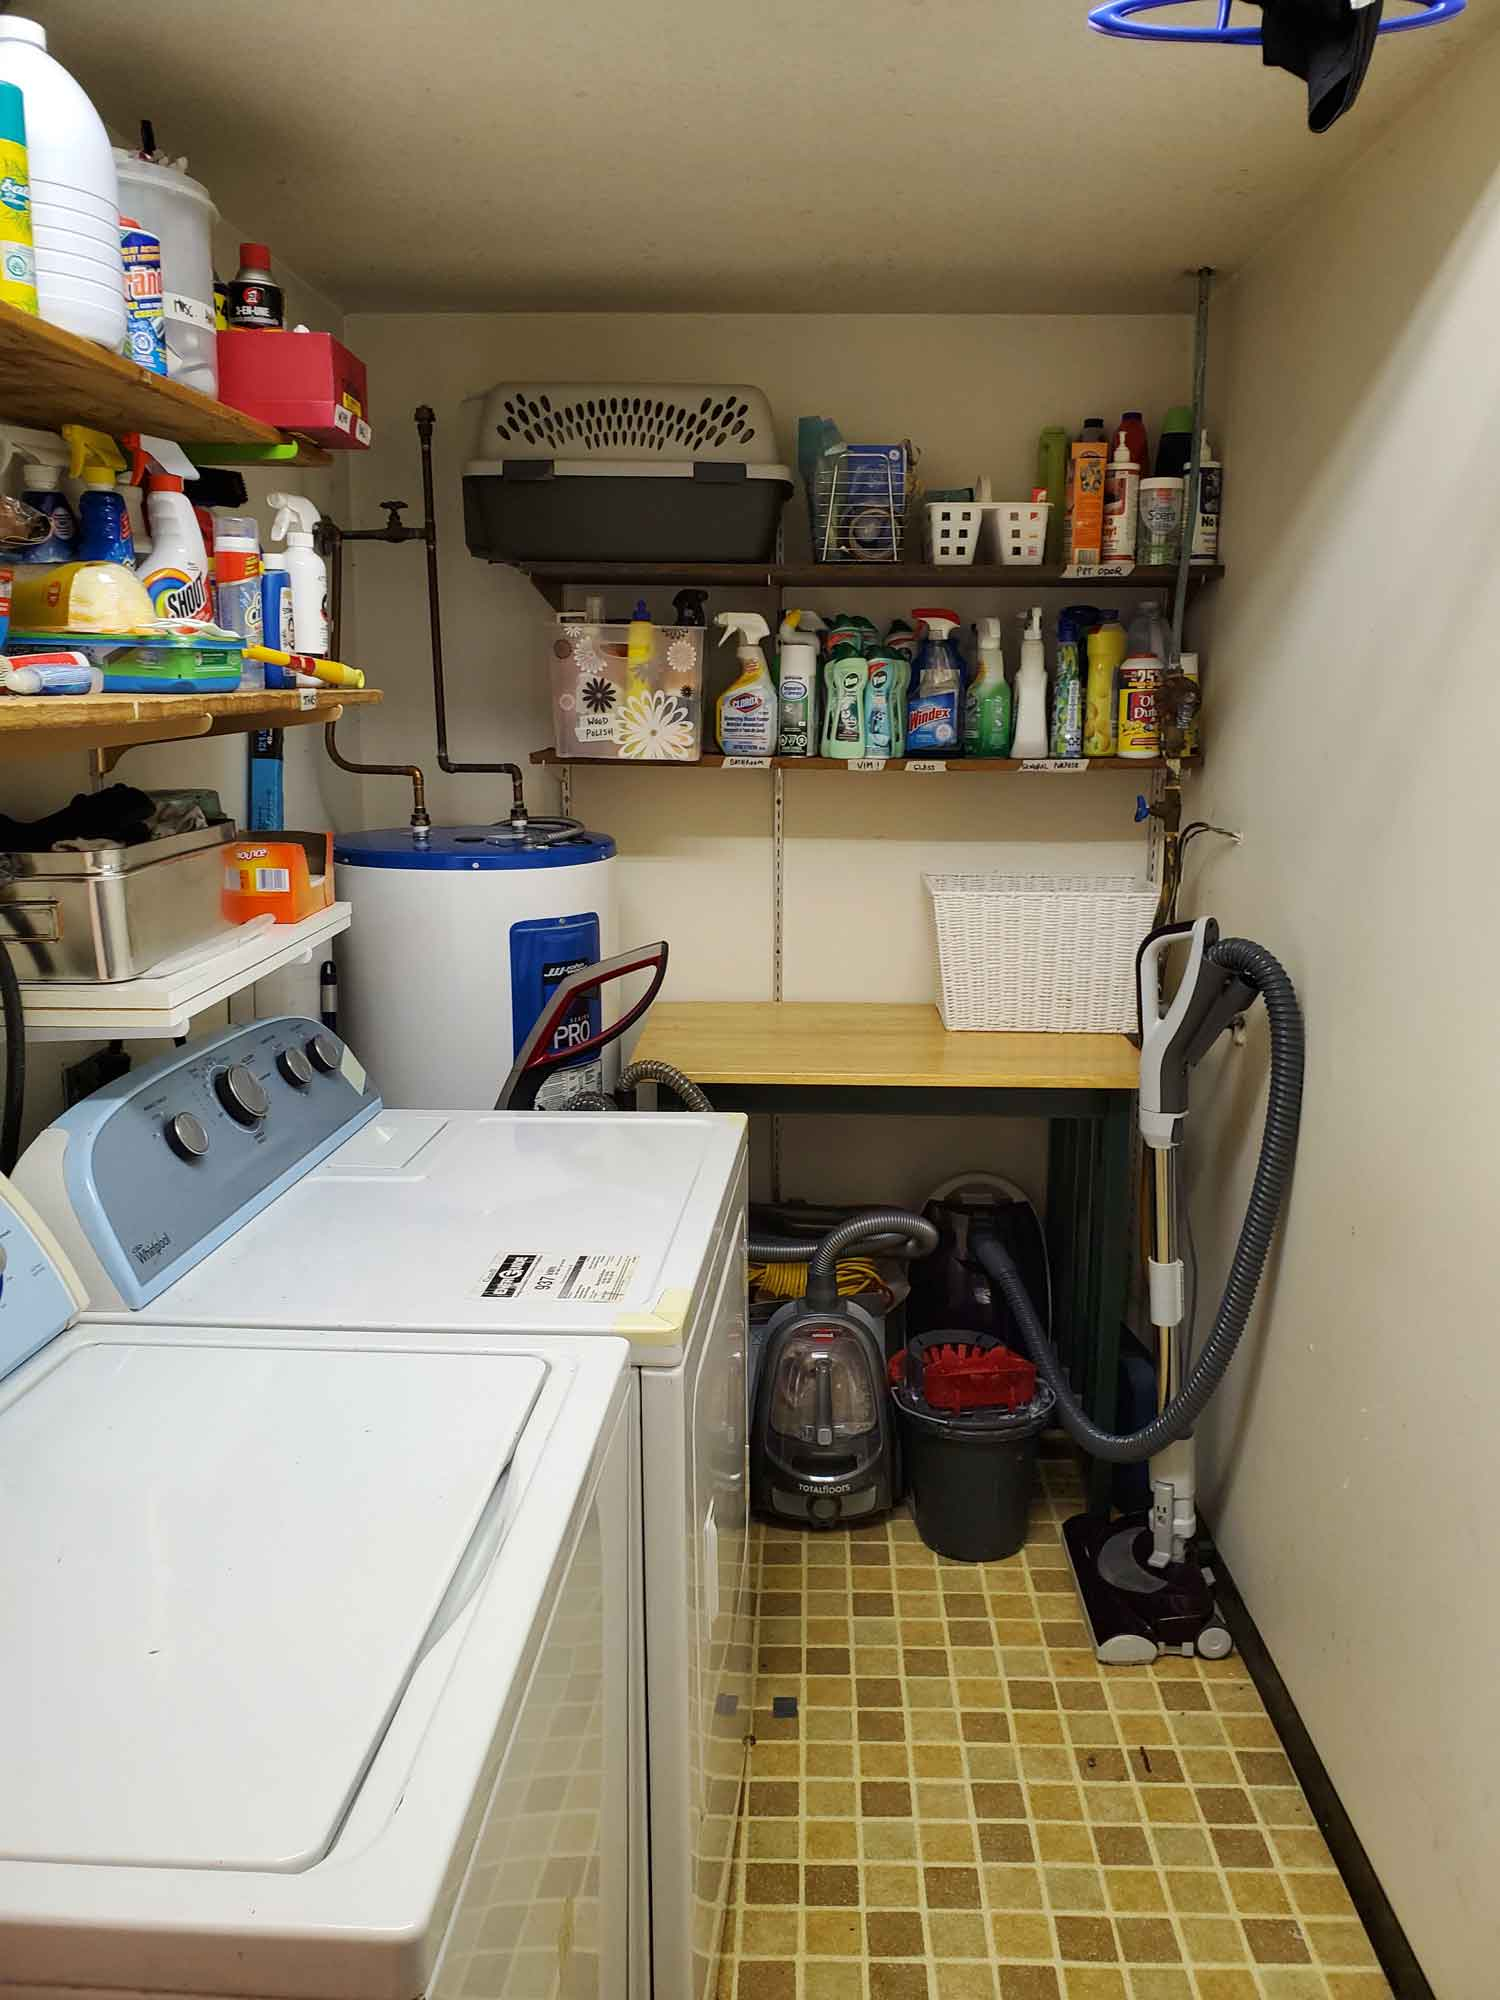 A laundry room with the side table, dryer and floor space cleared except for essential items